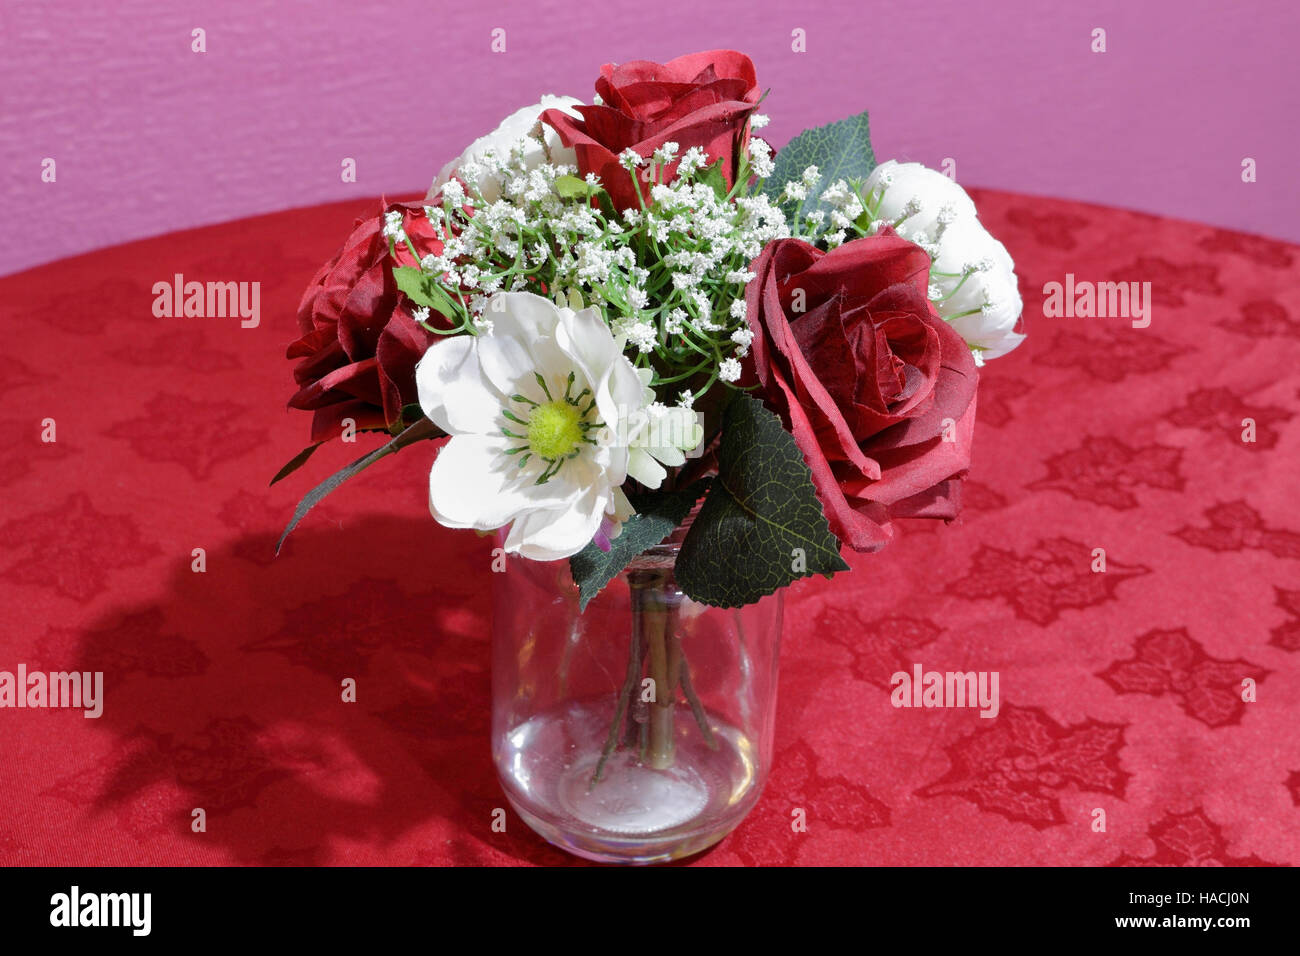 Decorative Plastic Flowers In A Glass Jar With Red Table Cloth